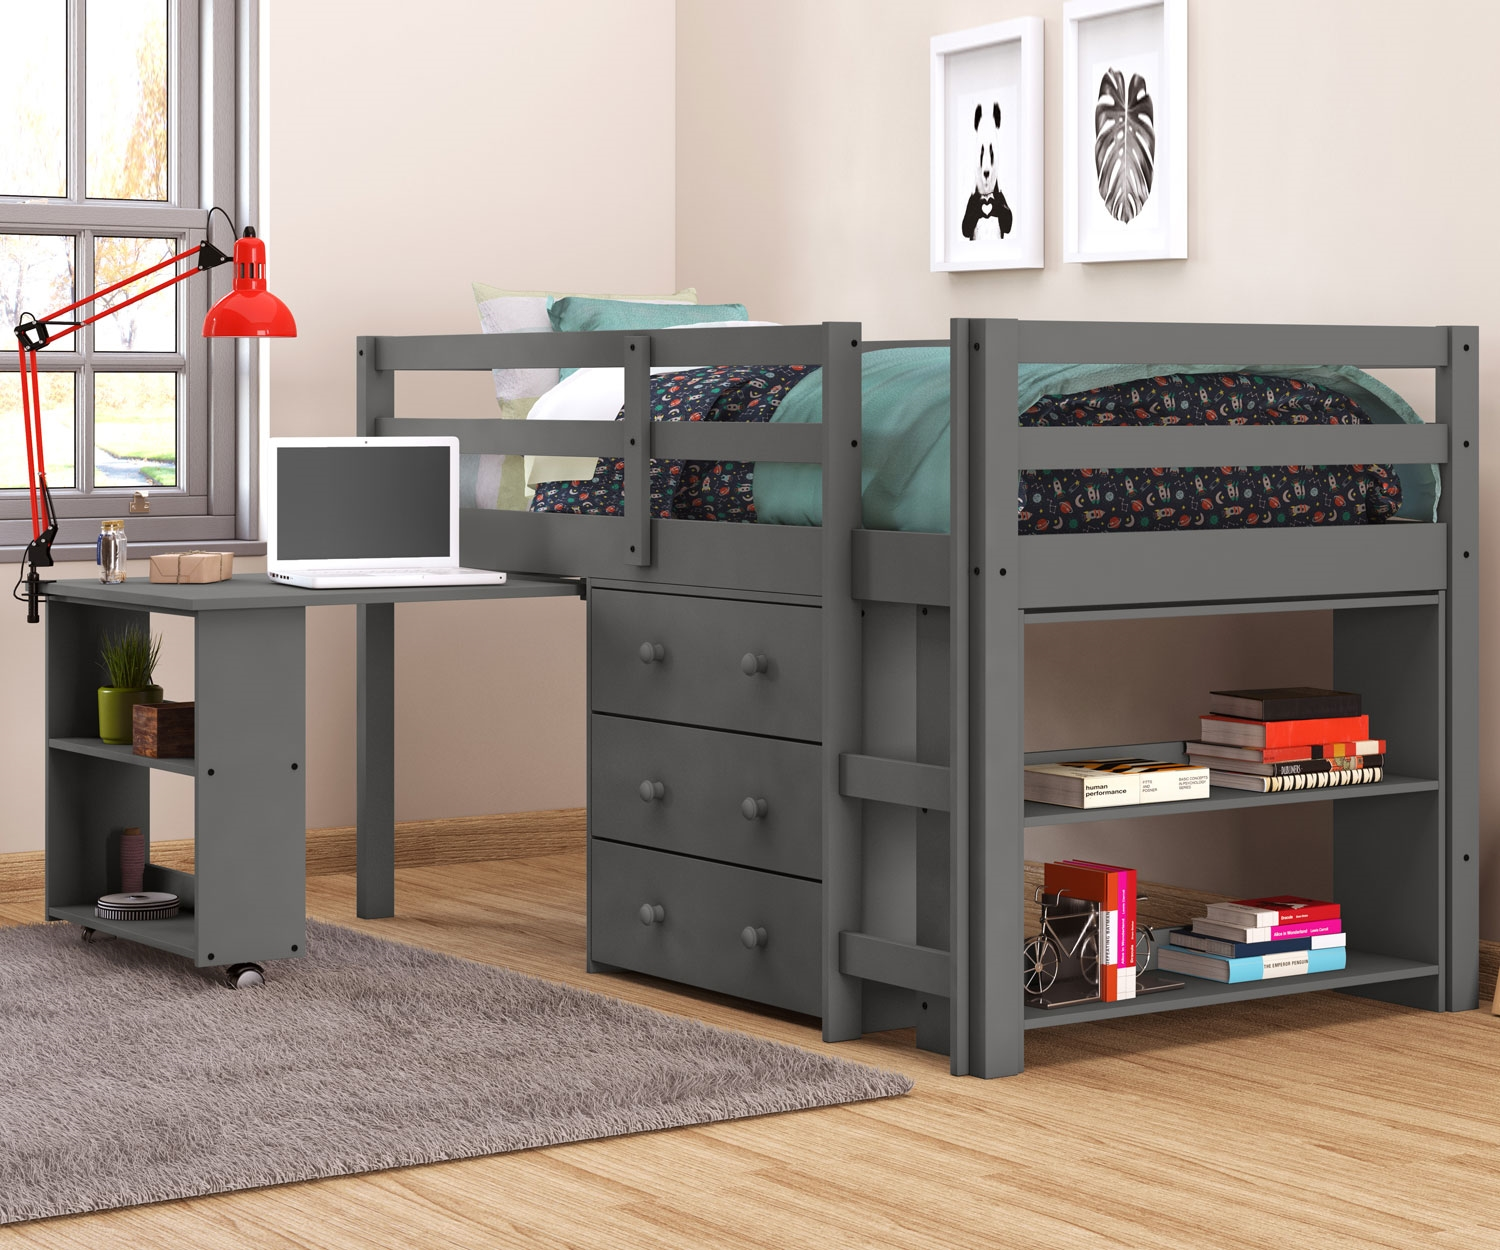 Twin Size Bunk Bed with Storage